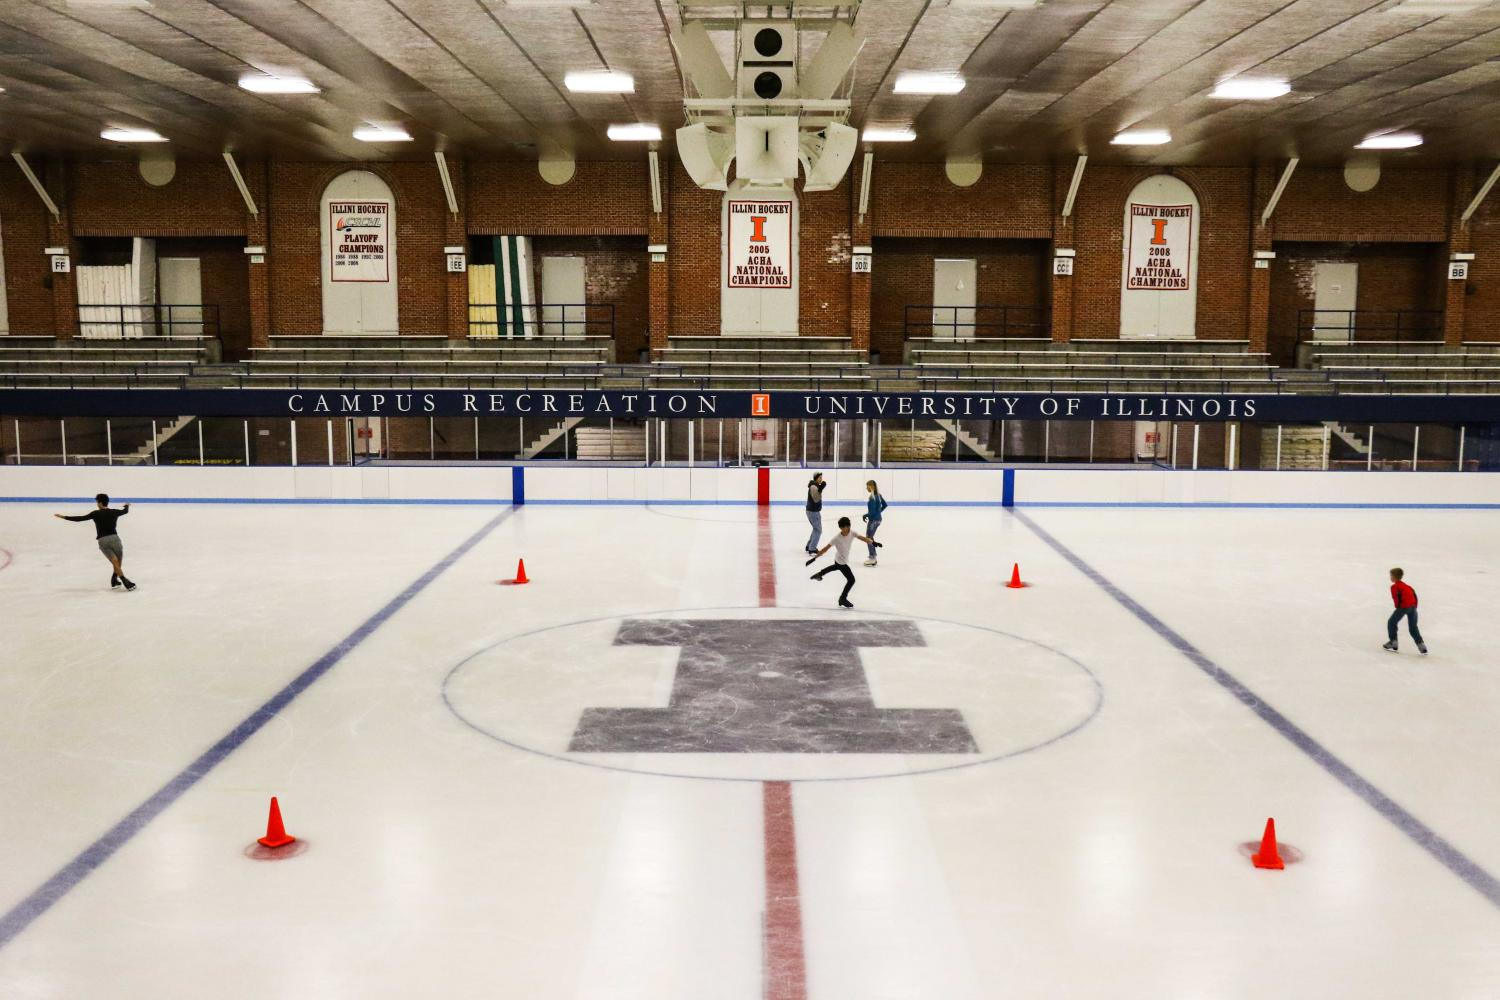 Ice+Girls+is+a+new+RSO+created+by+Amanda+Wang%2C+senior+in+ACES%2C+to+help+promote+the+Division+1+hockey+team+at+the+University.